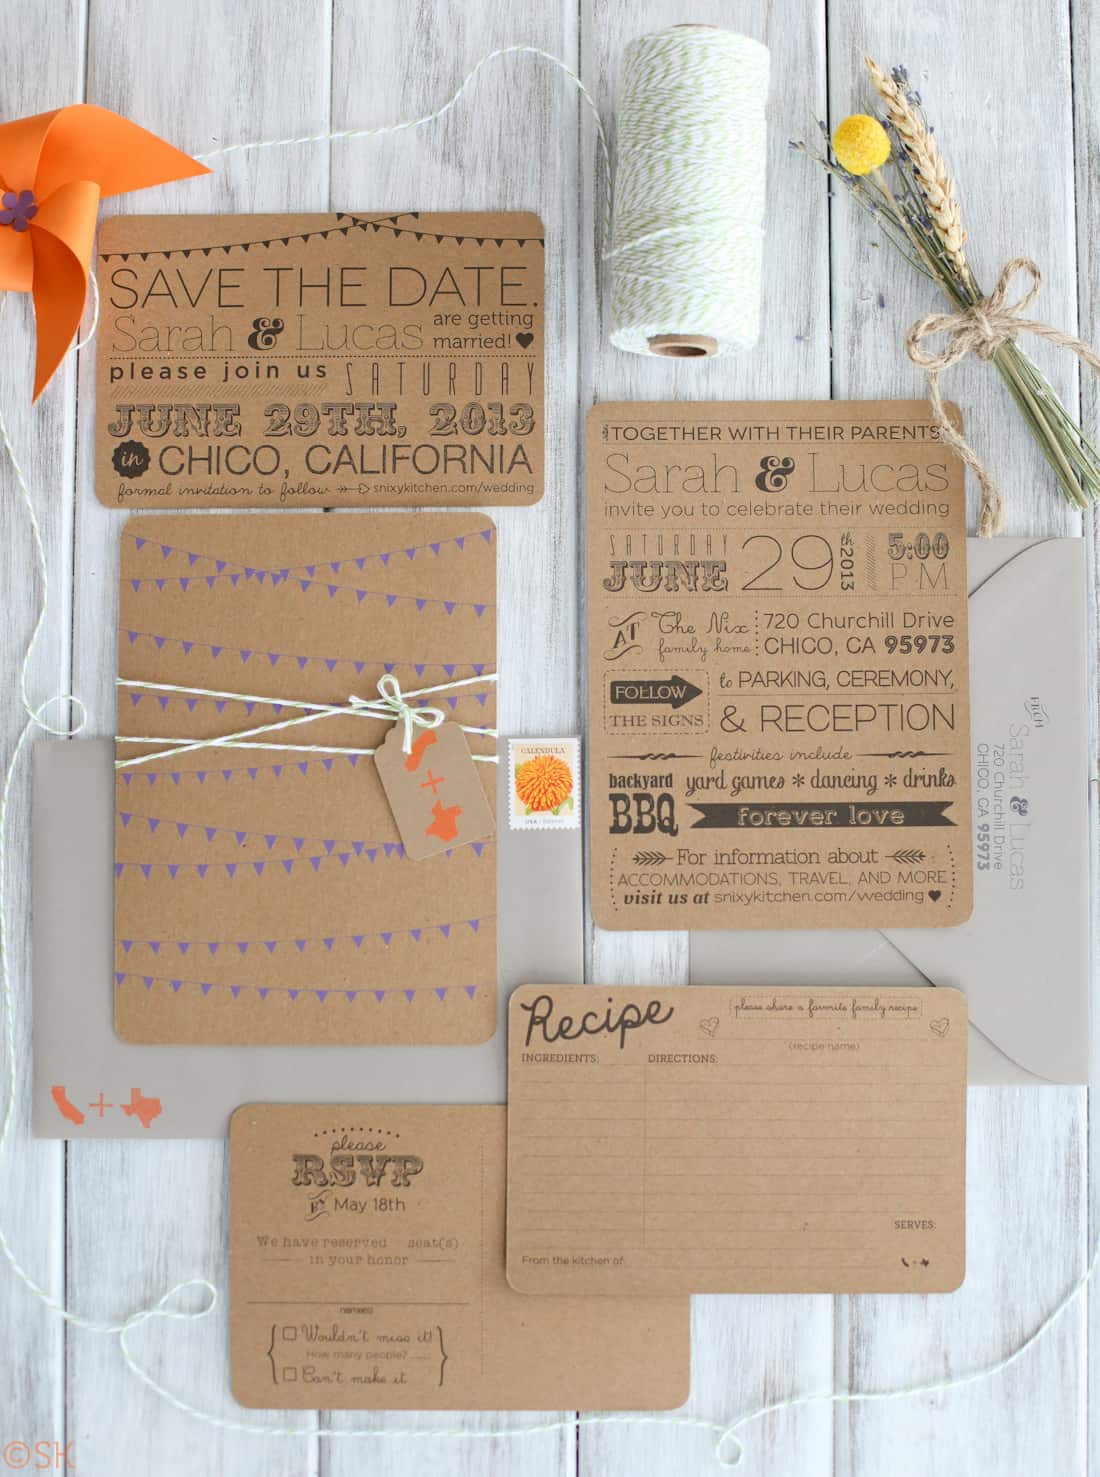 wording for wedding invitations together with their parents, Wedding invitations